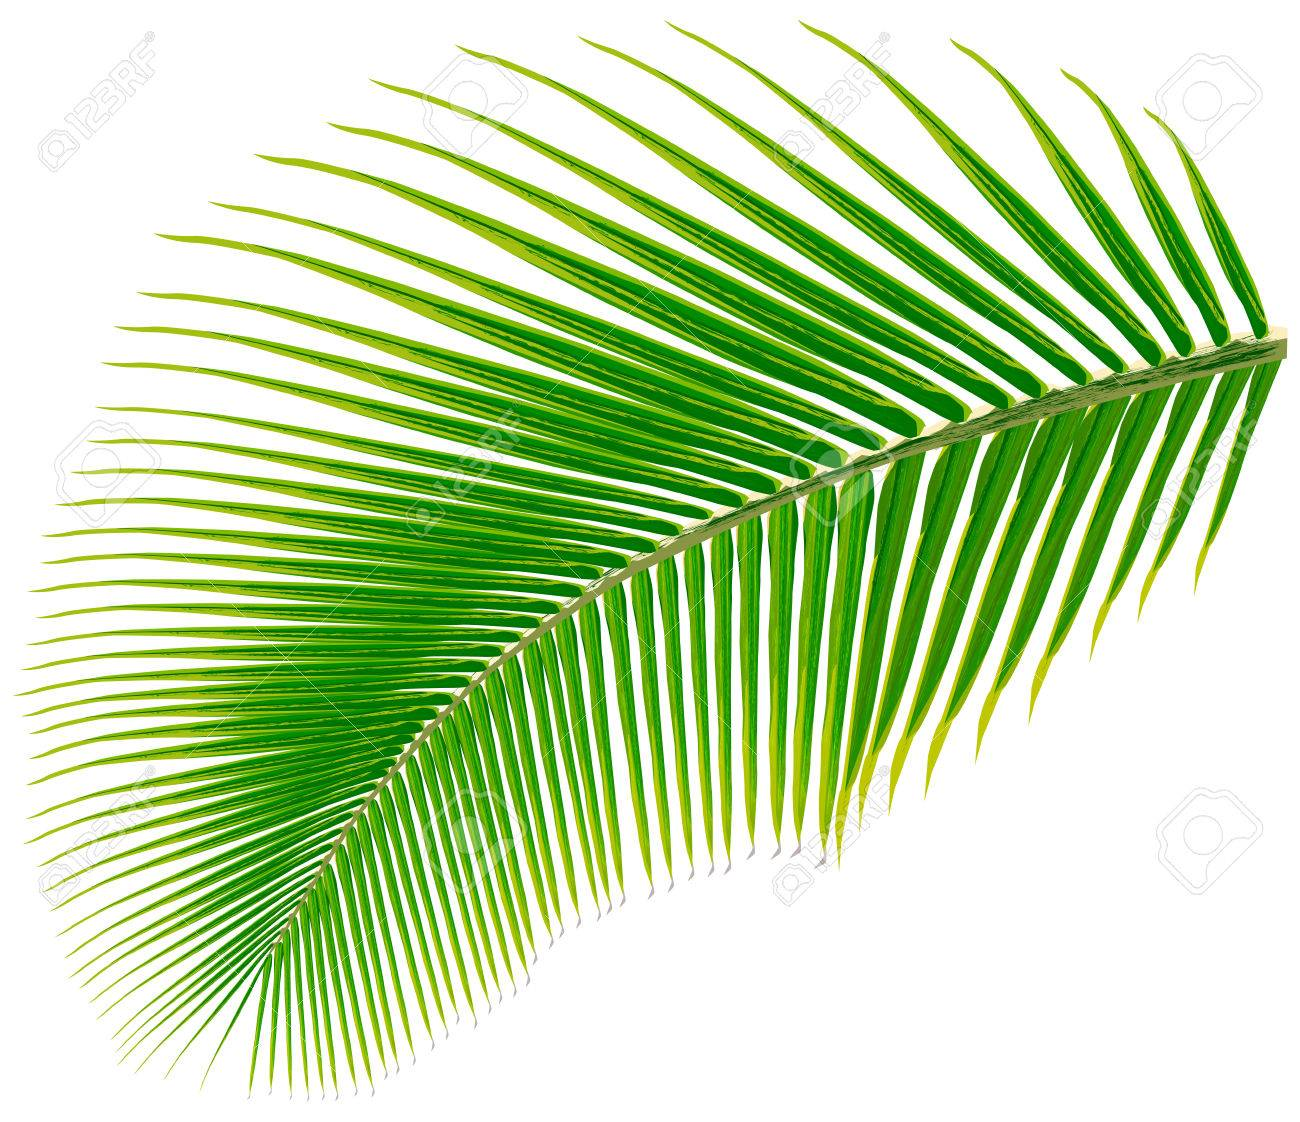 Palm tree leaf, vector illustration, isolated on white » Clipart Station.